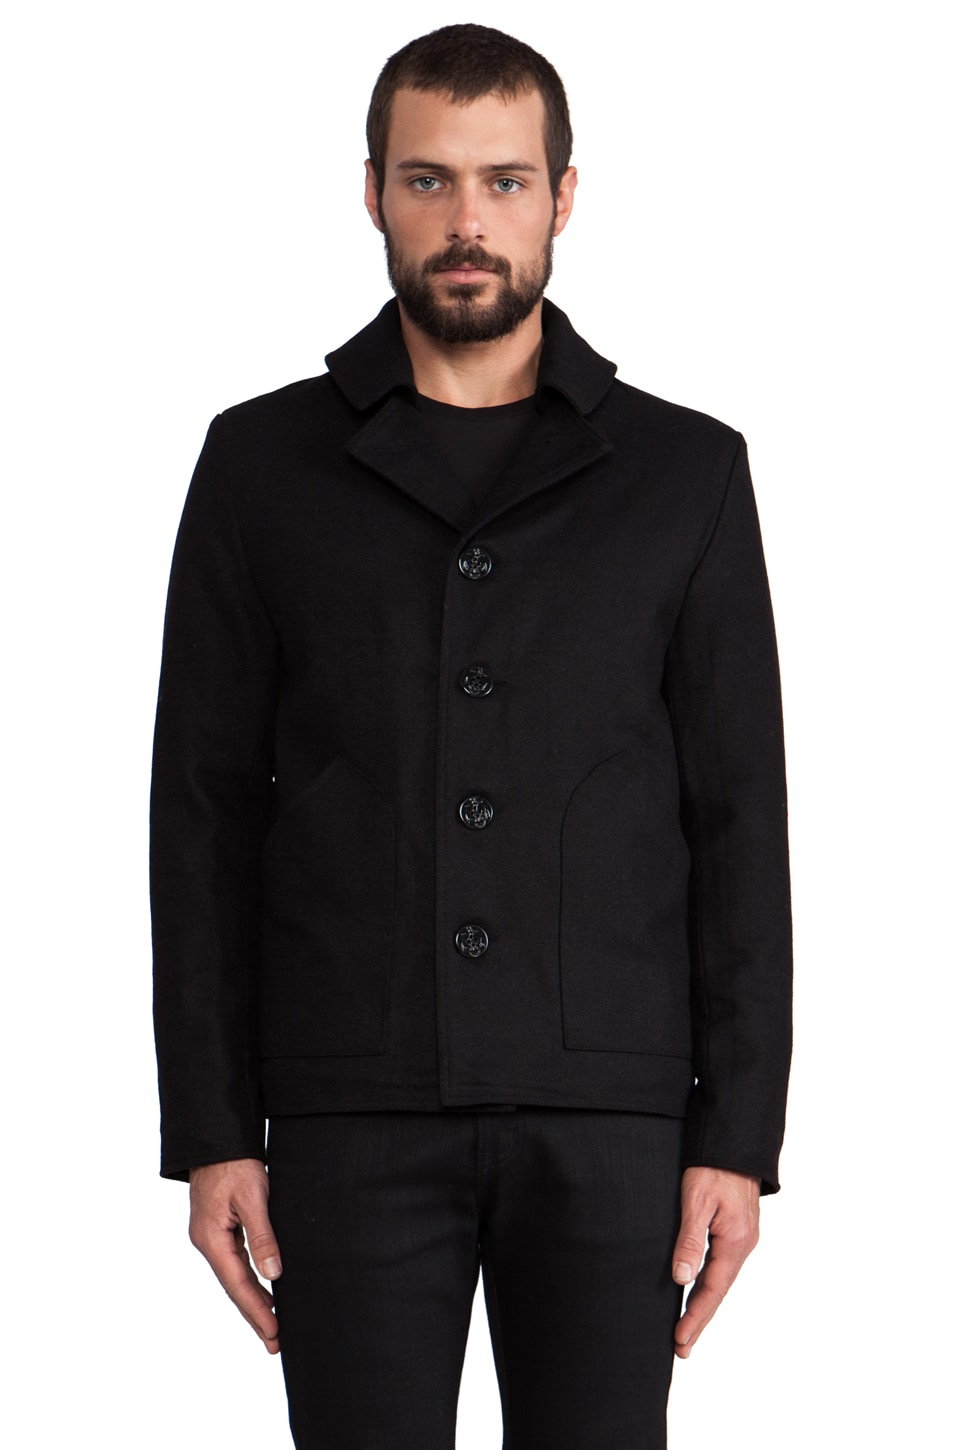 COMUNE Knowles Peacoat in Black